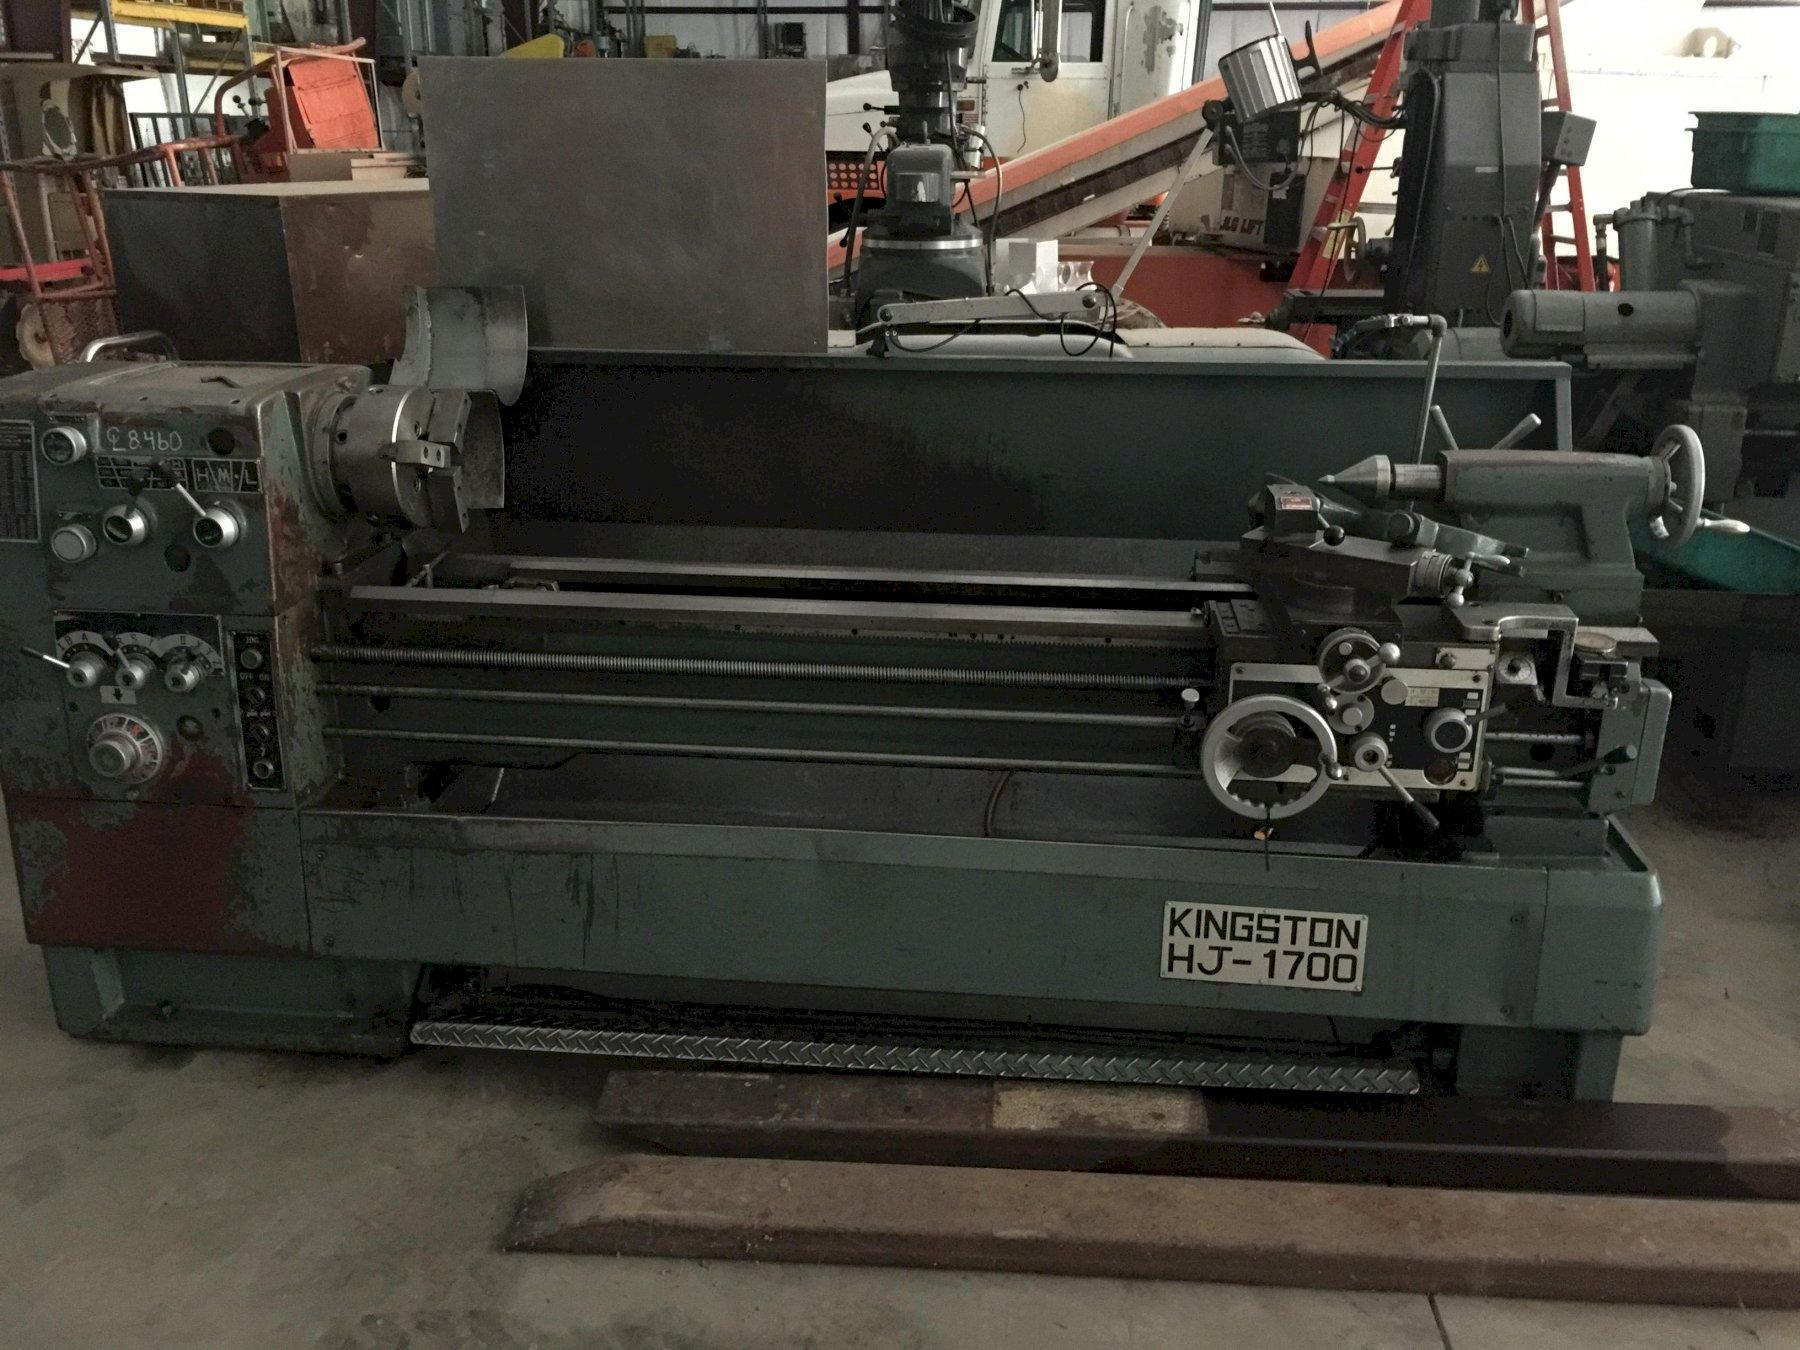 "Kingston HJ1700 Engine Lathe with: 17"" Swing, 67"" Centers, and 10"" Chuck Taper Attachment."